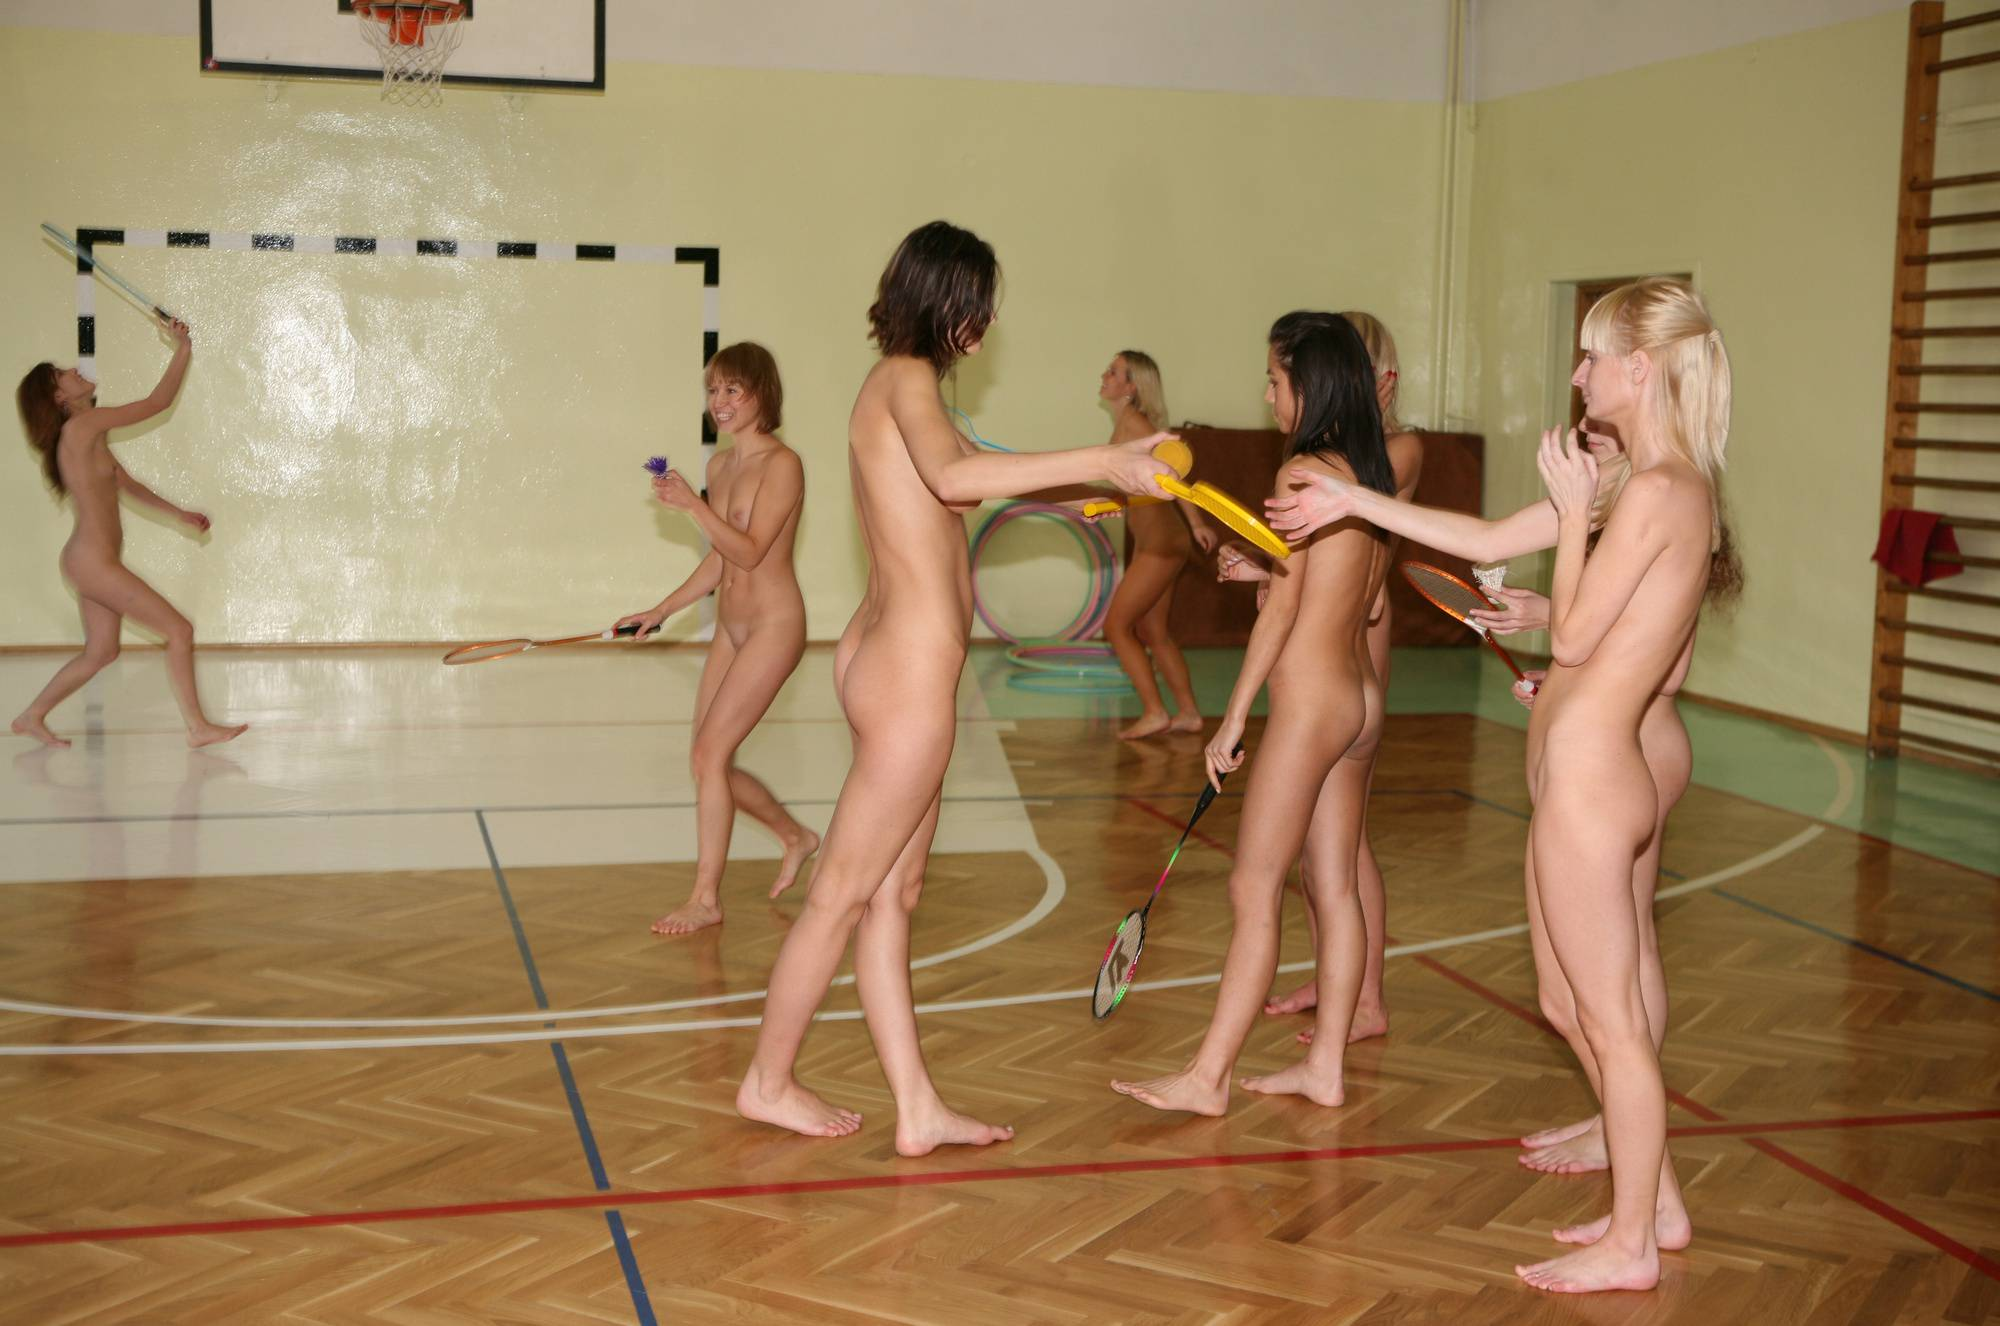 Nudist Photos Gym Babington and Rackets - 1